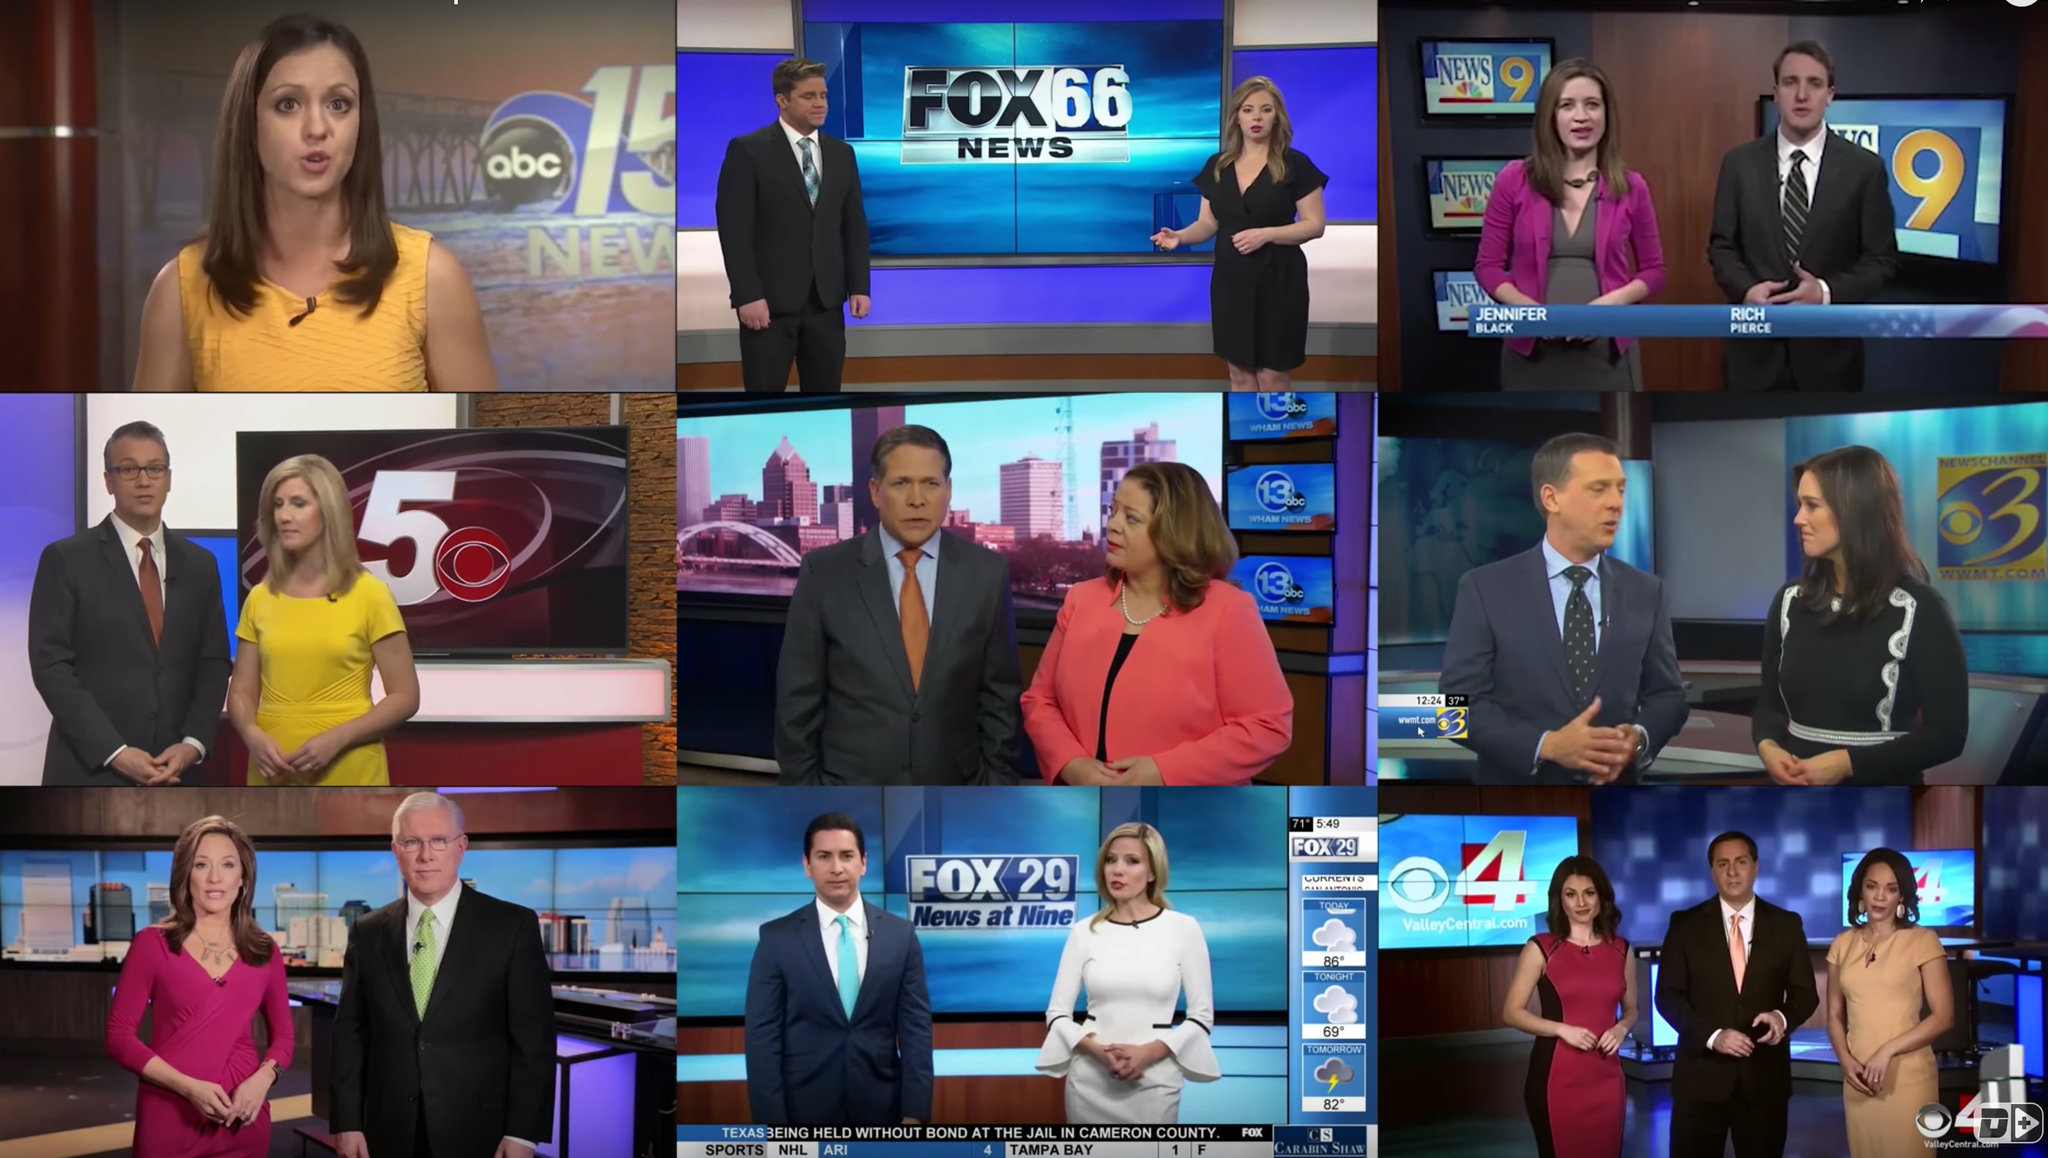 Senators Ask Fcc To Investigate Sinclair Is Cny Central Owner Distorting News